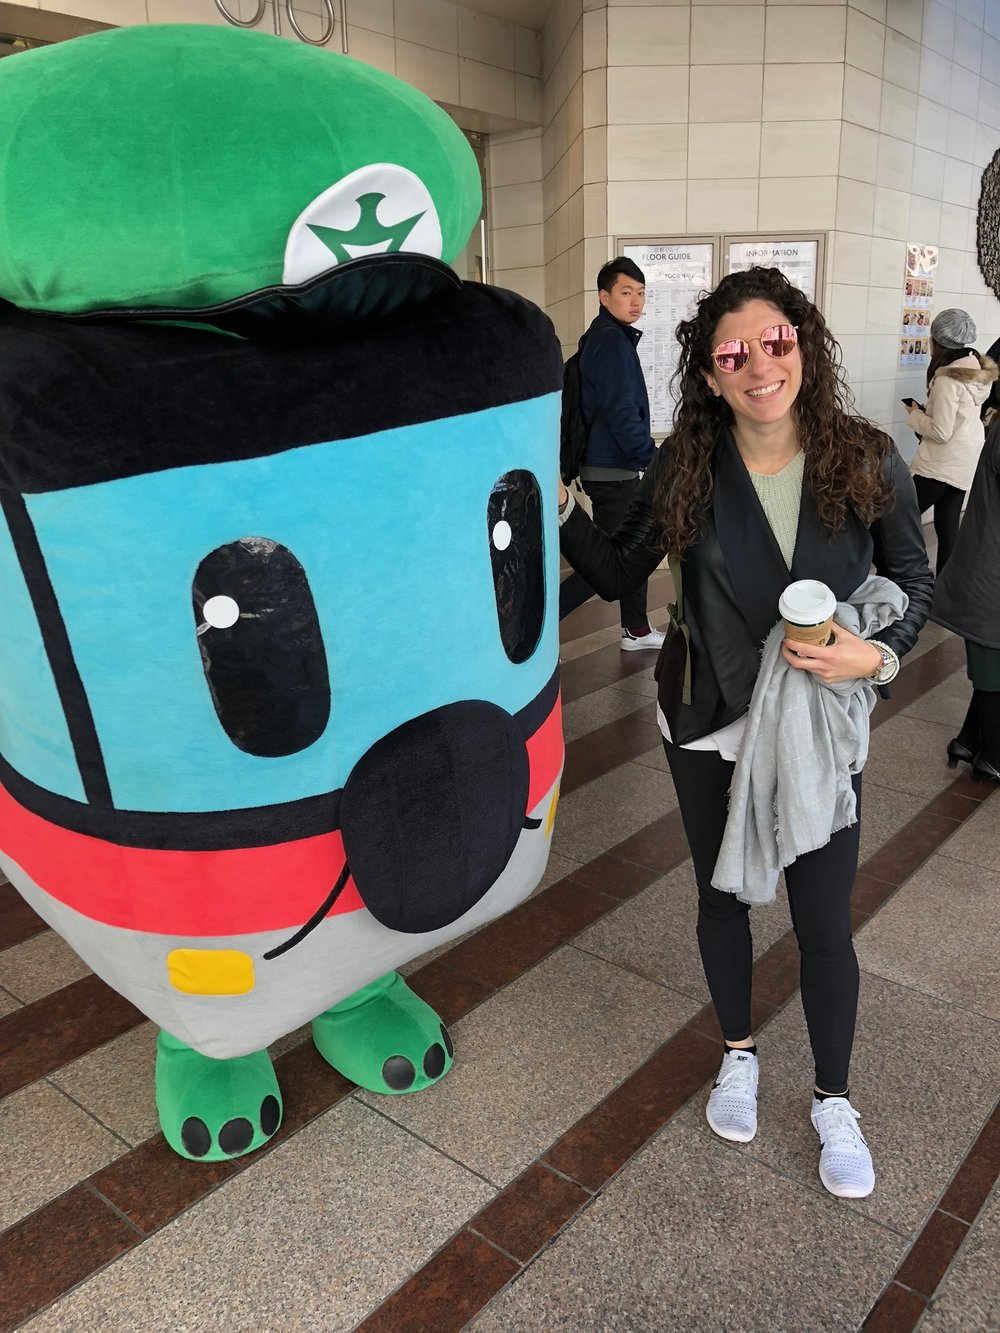 Al made friends with the Kyoto Metro mascot as we were hustling to our next bus ride.